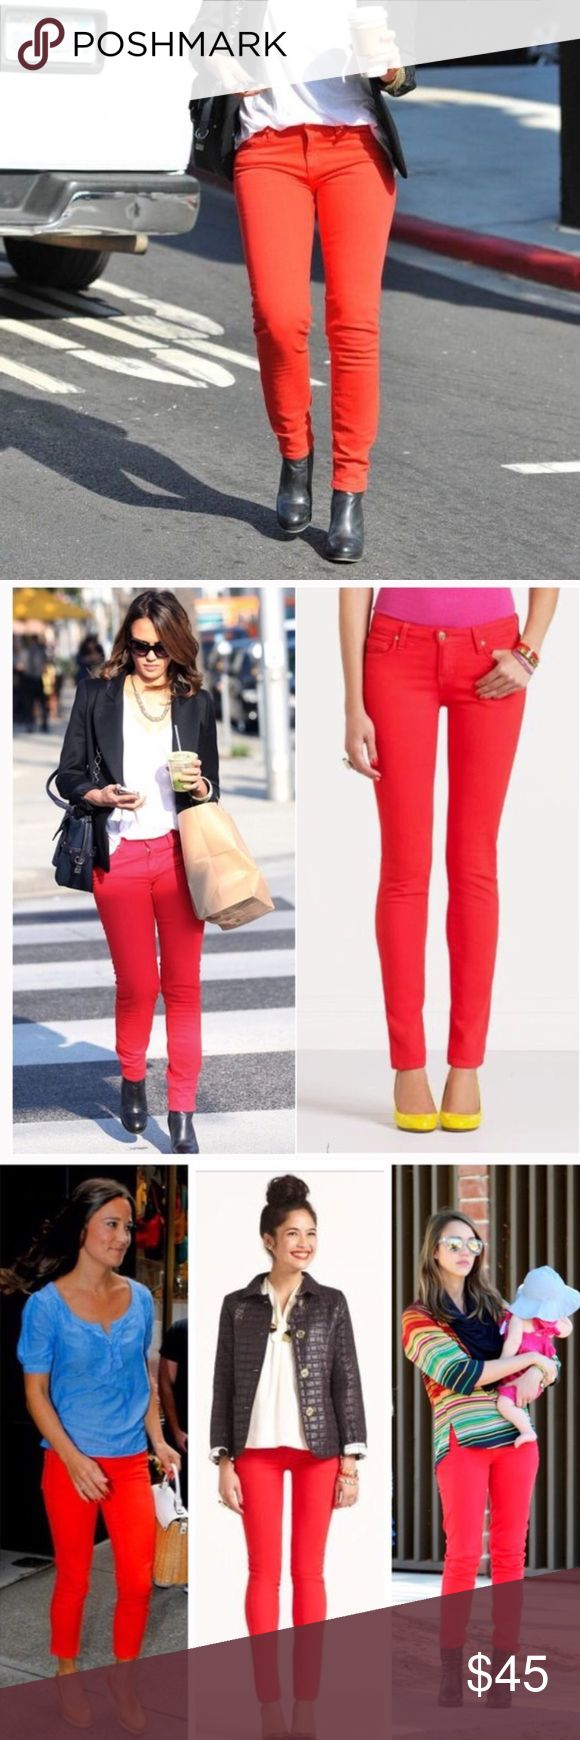 Kate Spade Broome Street Red Skinny Jeans Kate Spade Broome Street red jeans.  Fits true to size.  Slightly faded.  In gently used good condition.  Measurements available upon request.  All orders ship same or next business day! kate spade Jeans Skinny